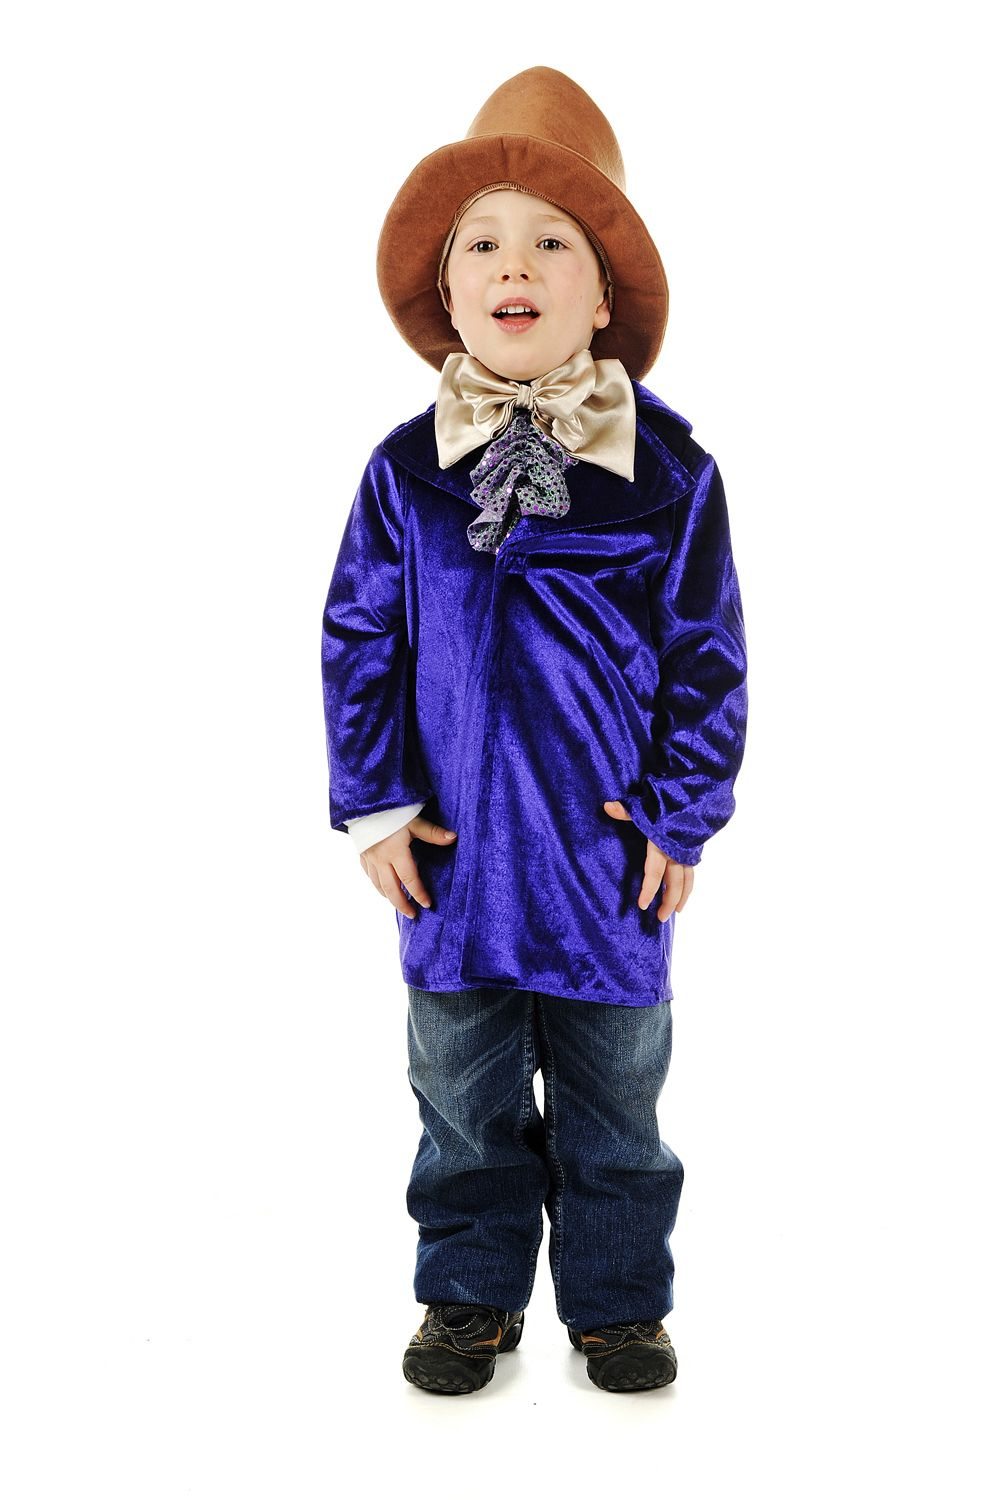 dress costumes boys fancy dress costumes children s kids boys girls ...